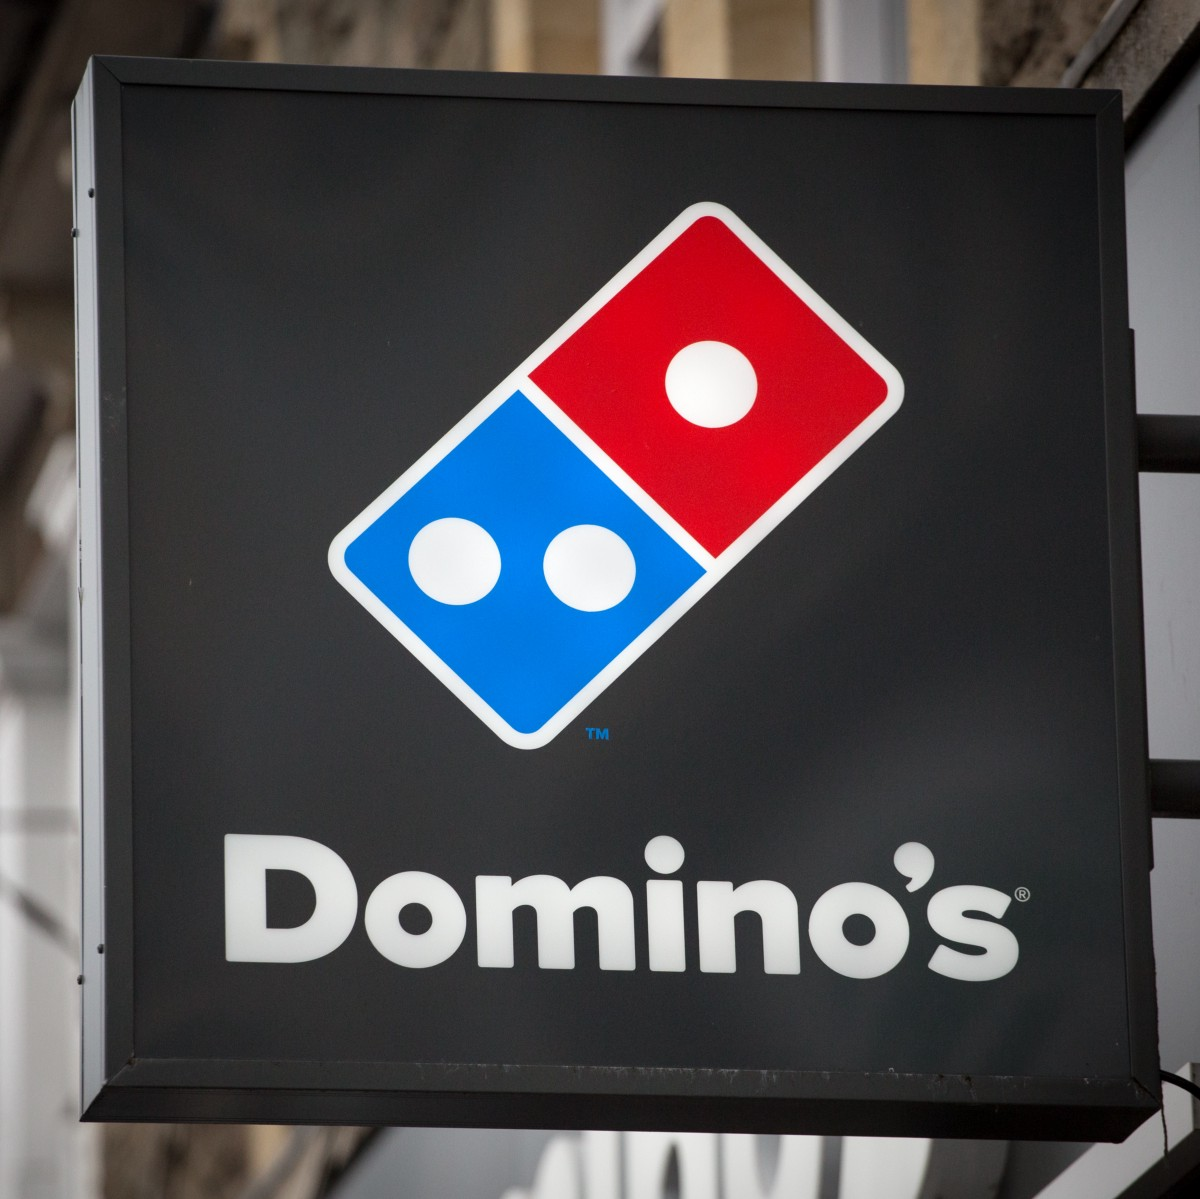 A Case Against Domino's Reveals a Slice of the Internet's Accessibility Issues